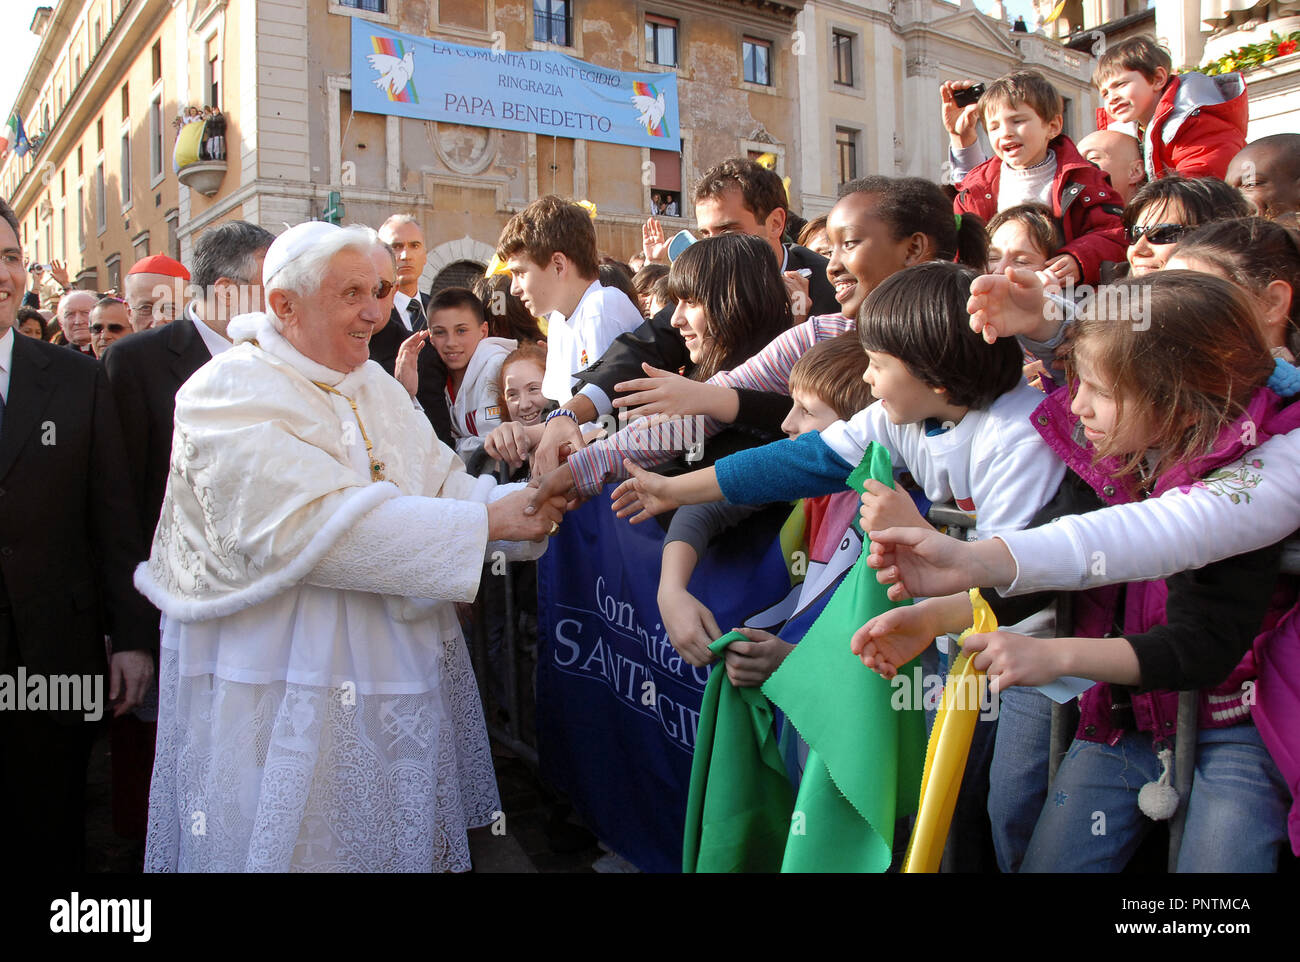 Pope Benedict XVi 07/04/2008 -The visit of Pope Benedict XVI to San Bartolomeo all'Isola for the 40th anniversary of the Community of Sant'Egidio - Stock Image